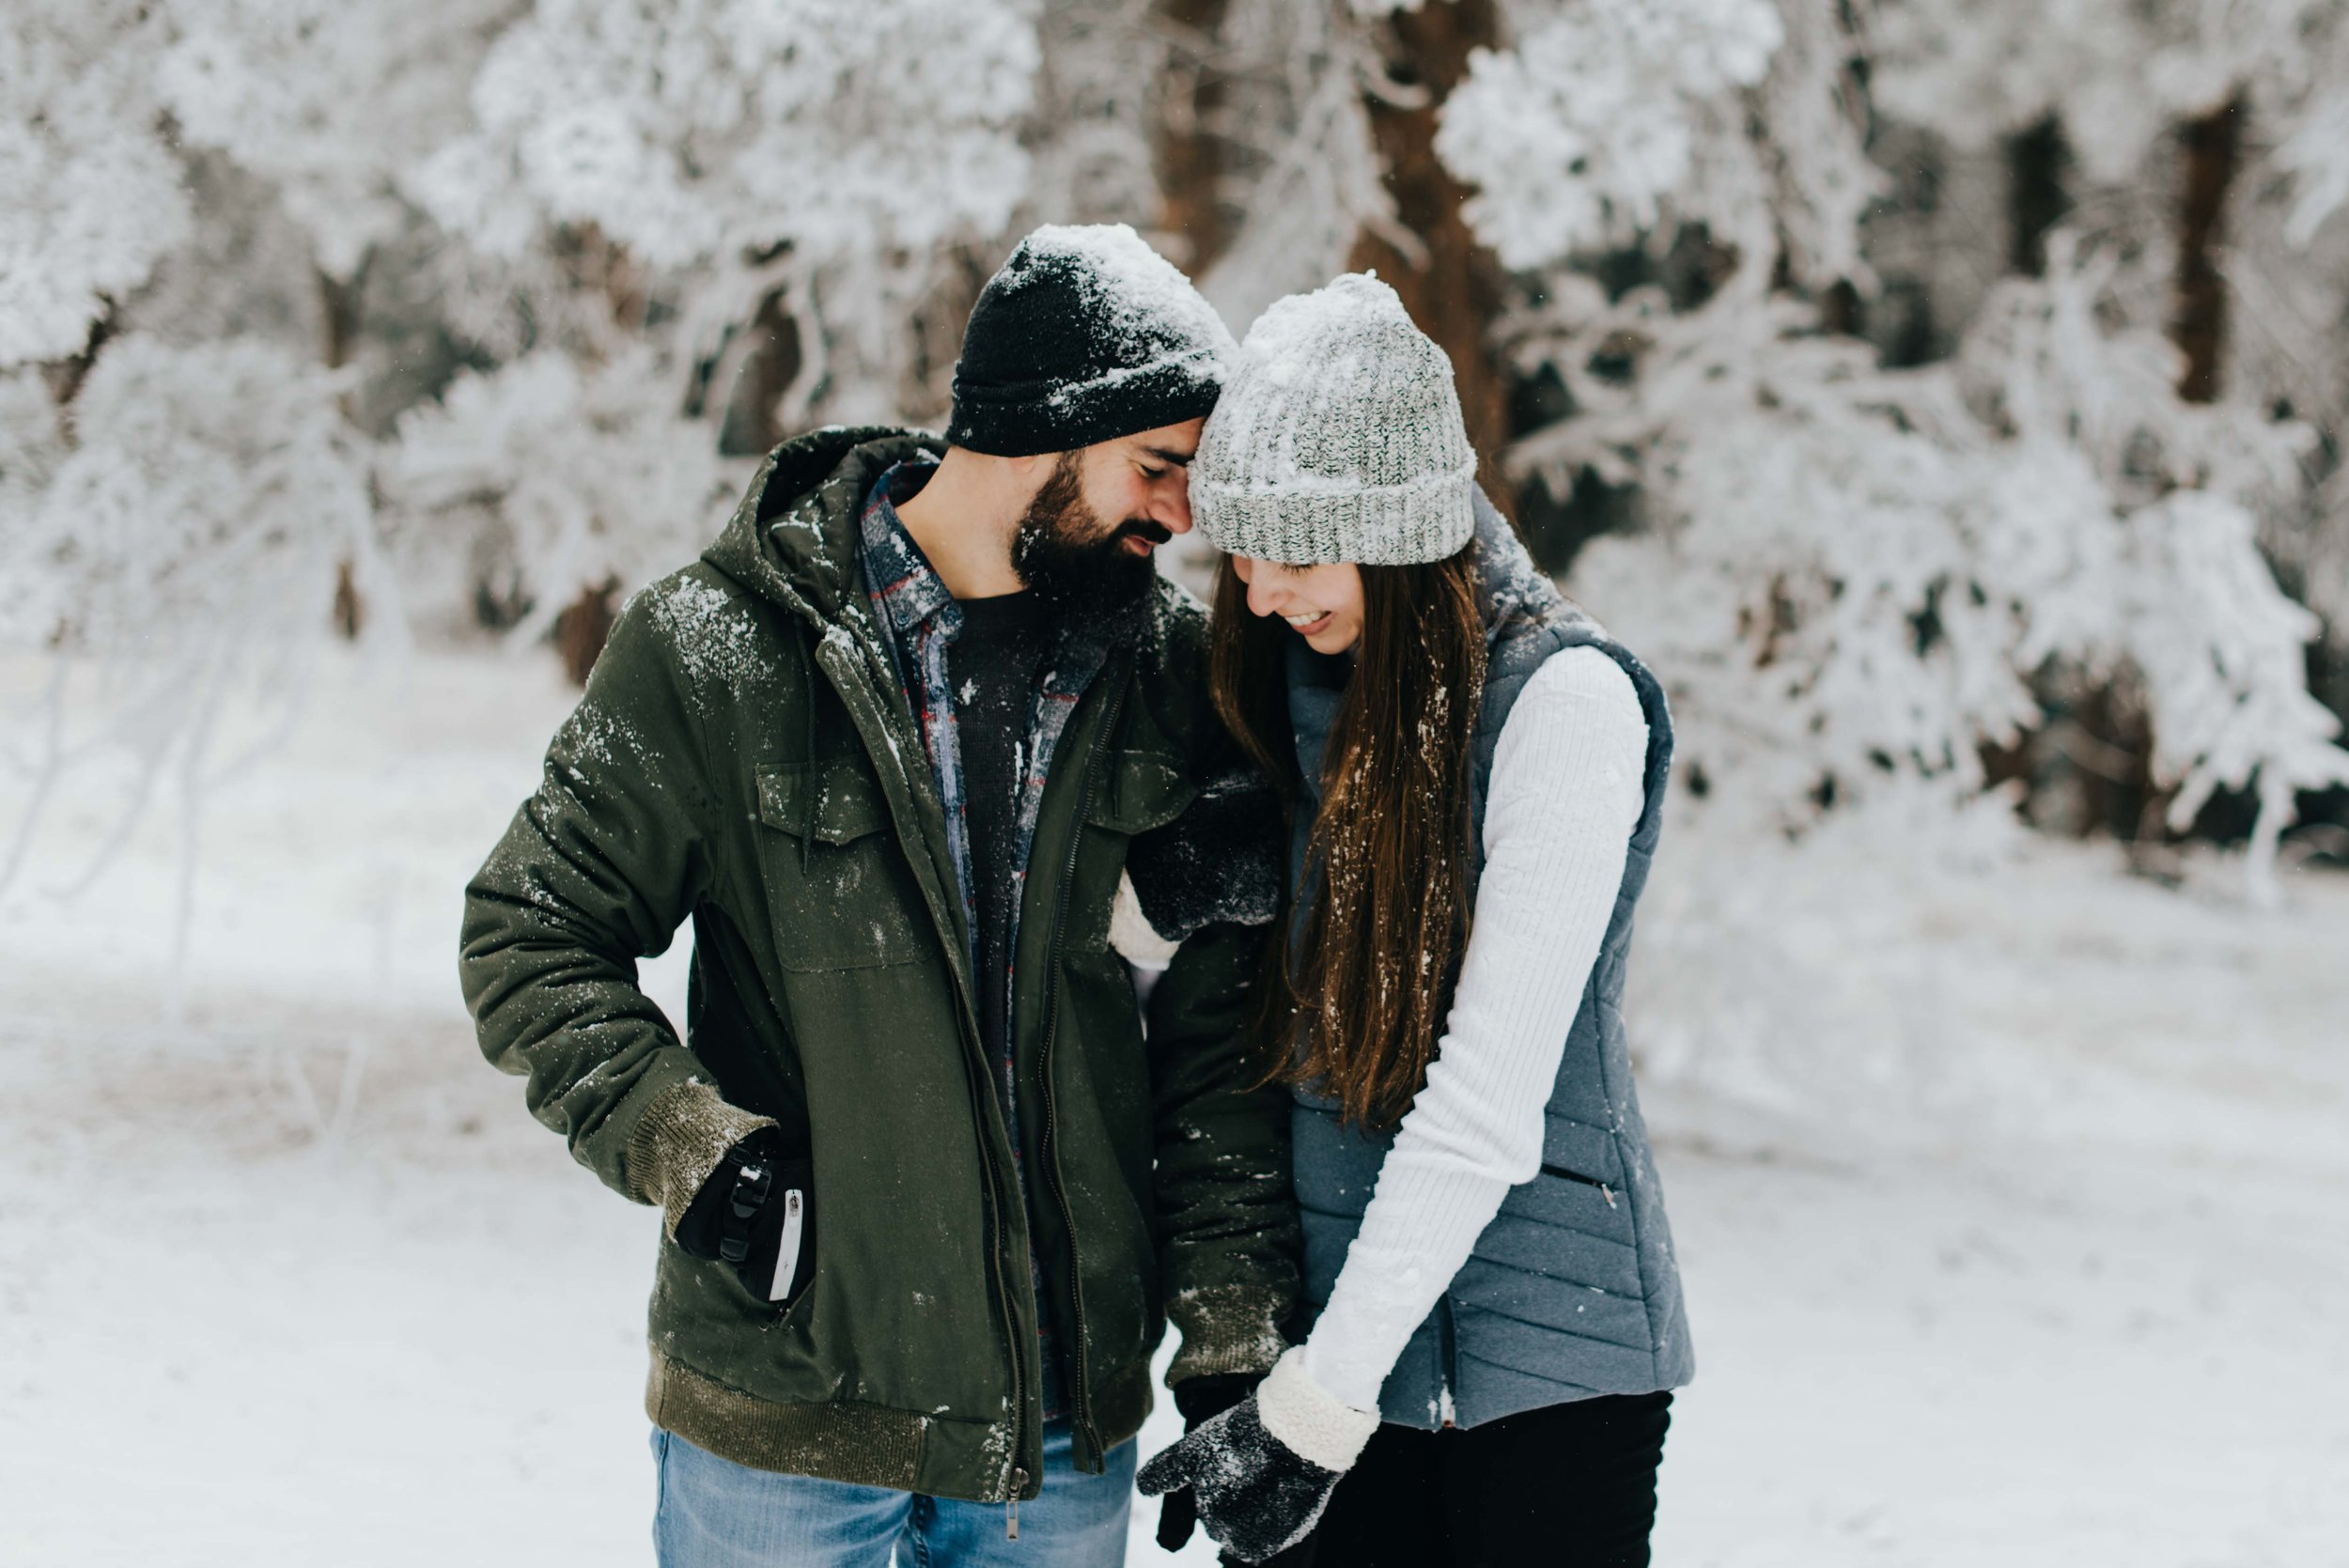 Nik and Tani meeting a truce after their snowball fight. Here they are holding hands during their adventurous engagement session.